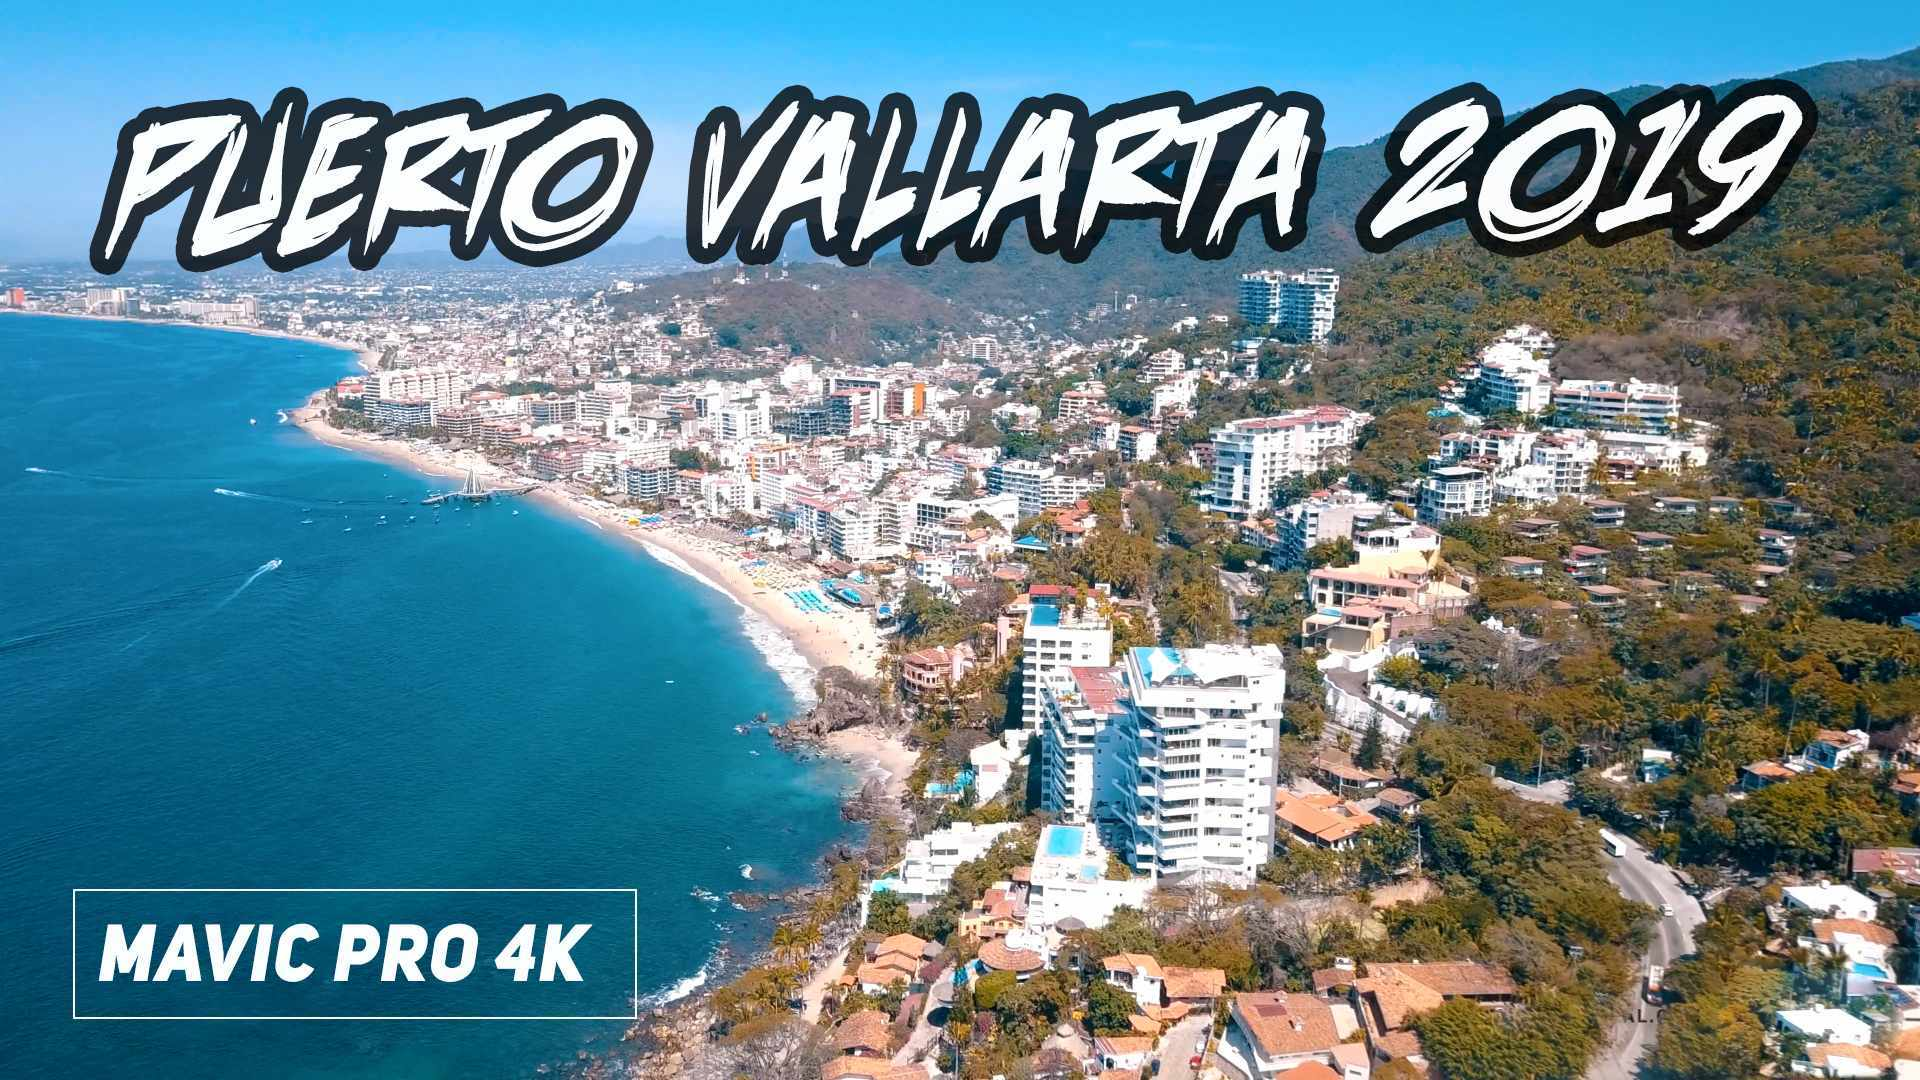 MAVIC Flying in Puerto Vallarta, Mexico 2019 - Hotel Mousai Garza Blanca Resort by Marcin Migdal